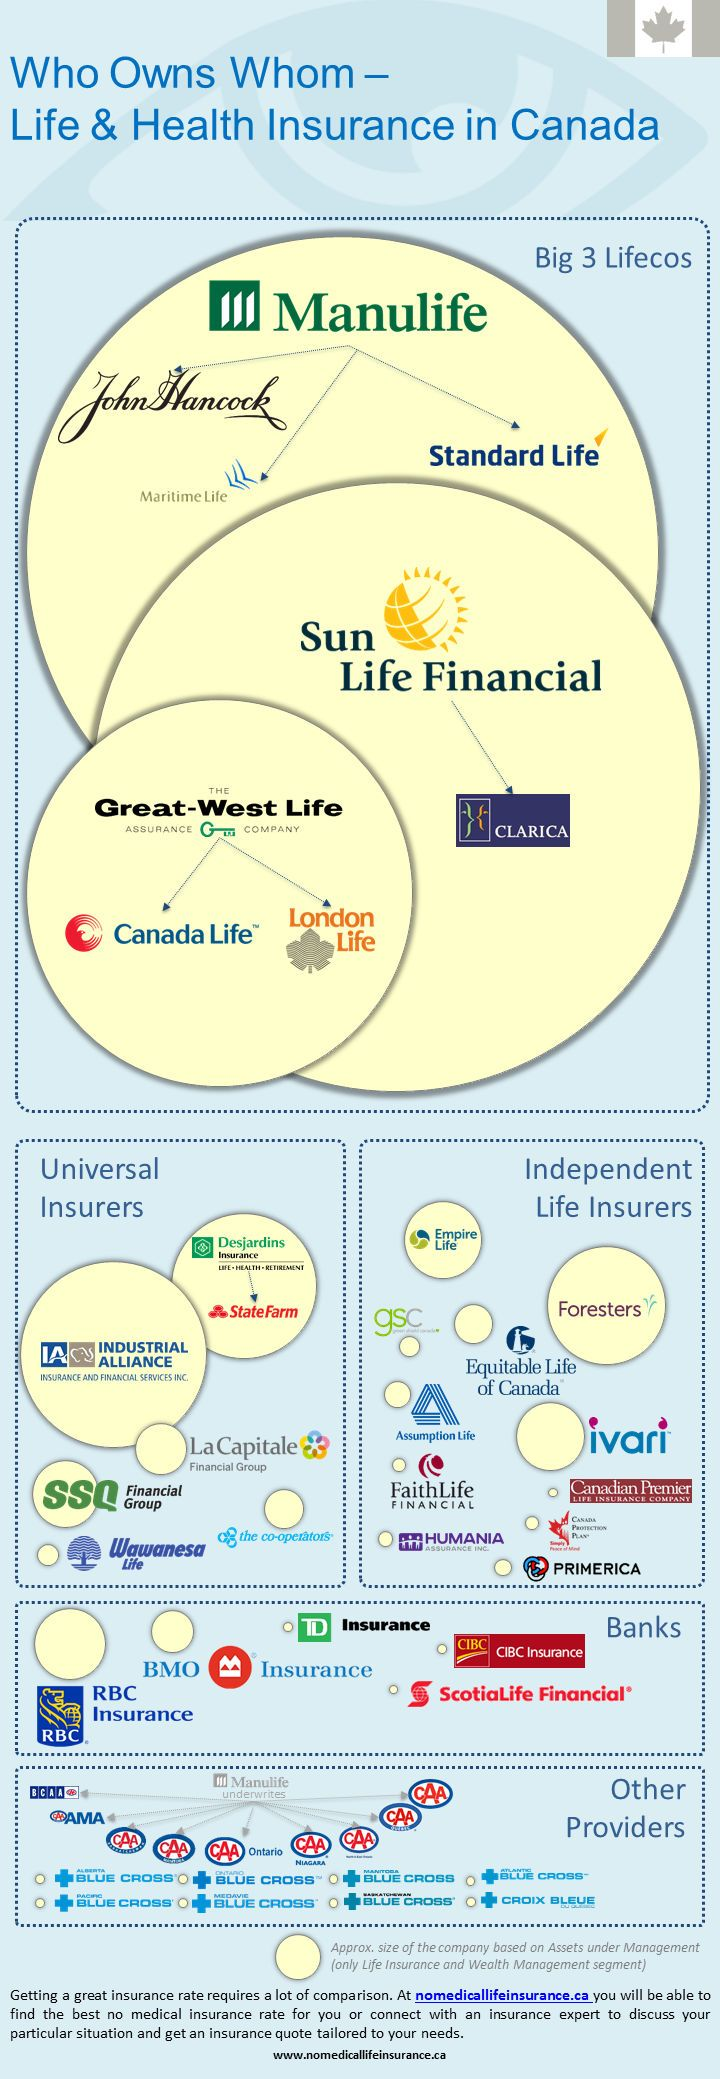 Life Insurance Companies In Canada Who Owns Whom Life